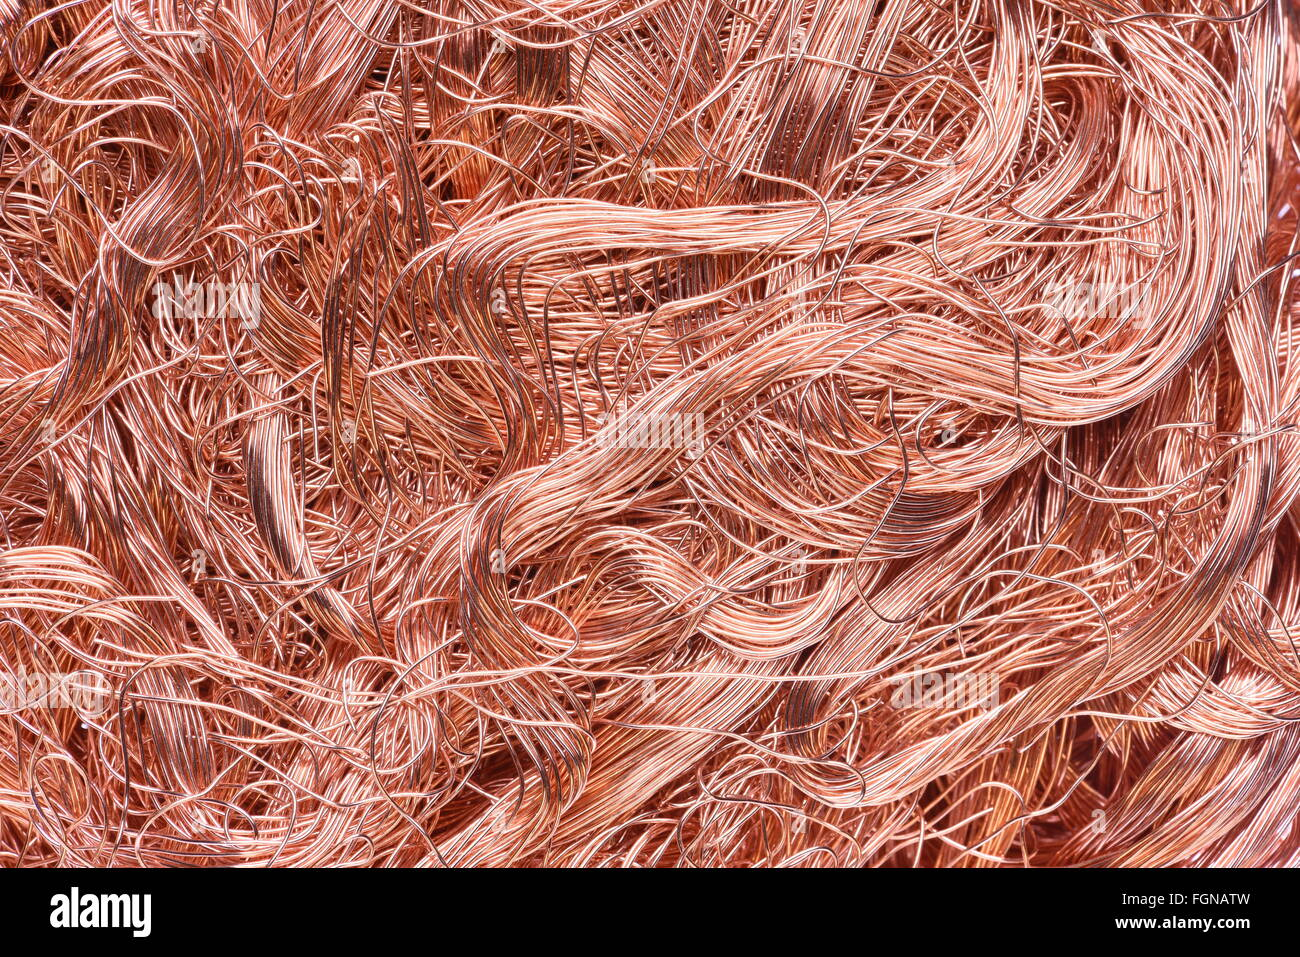 Copper wire industrial raw materials Stock Photo, Royalty Free ...